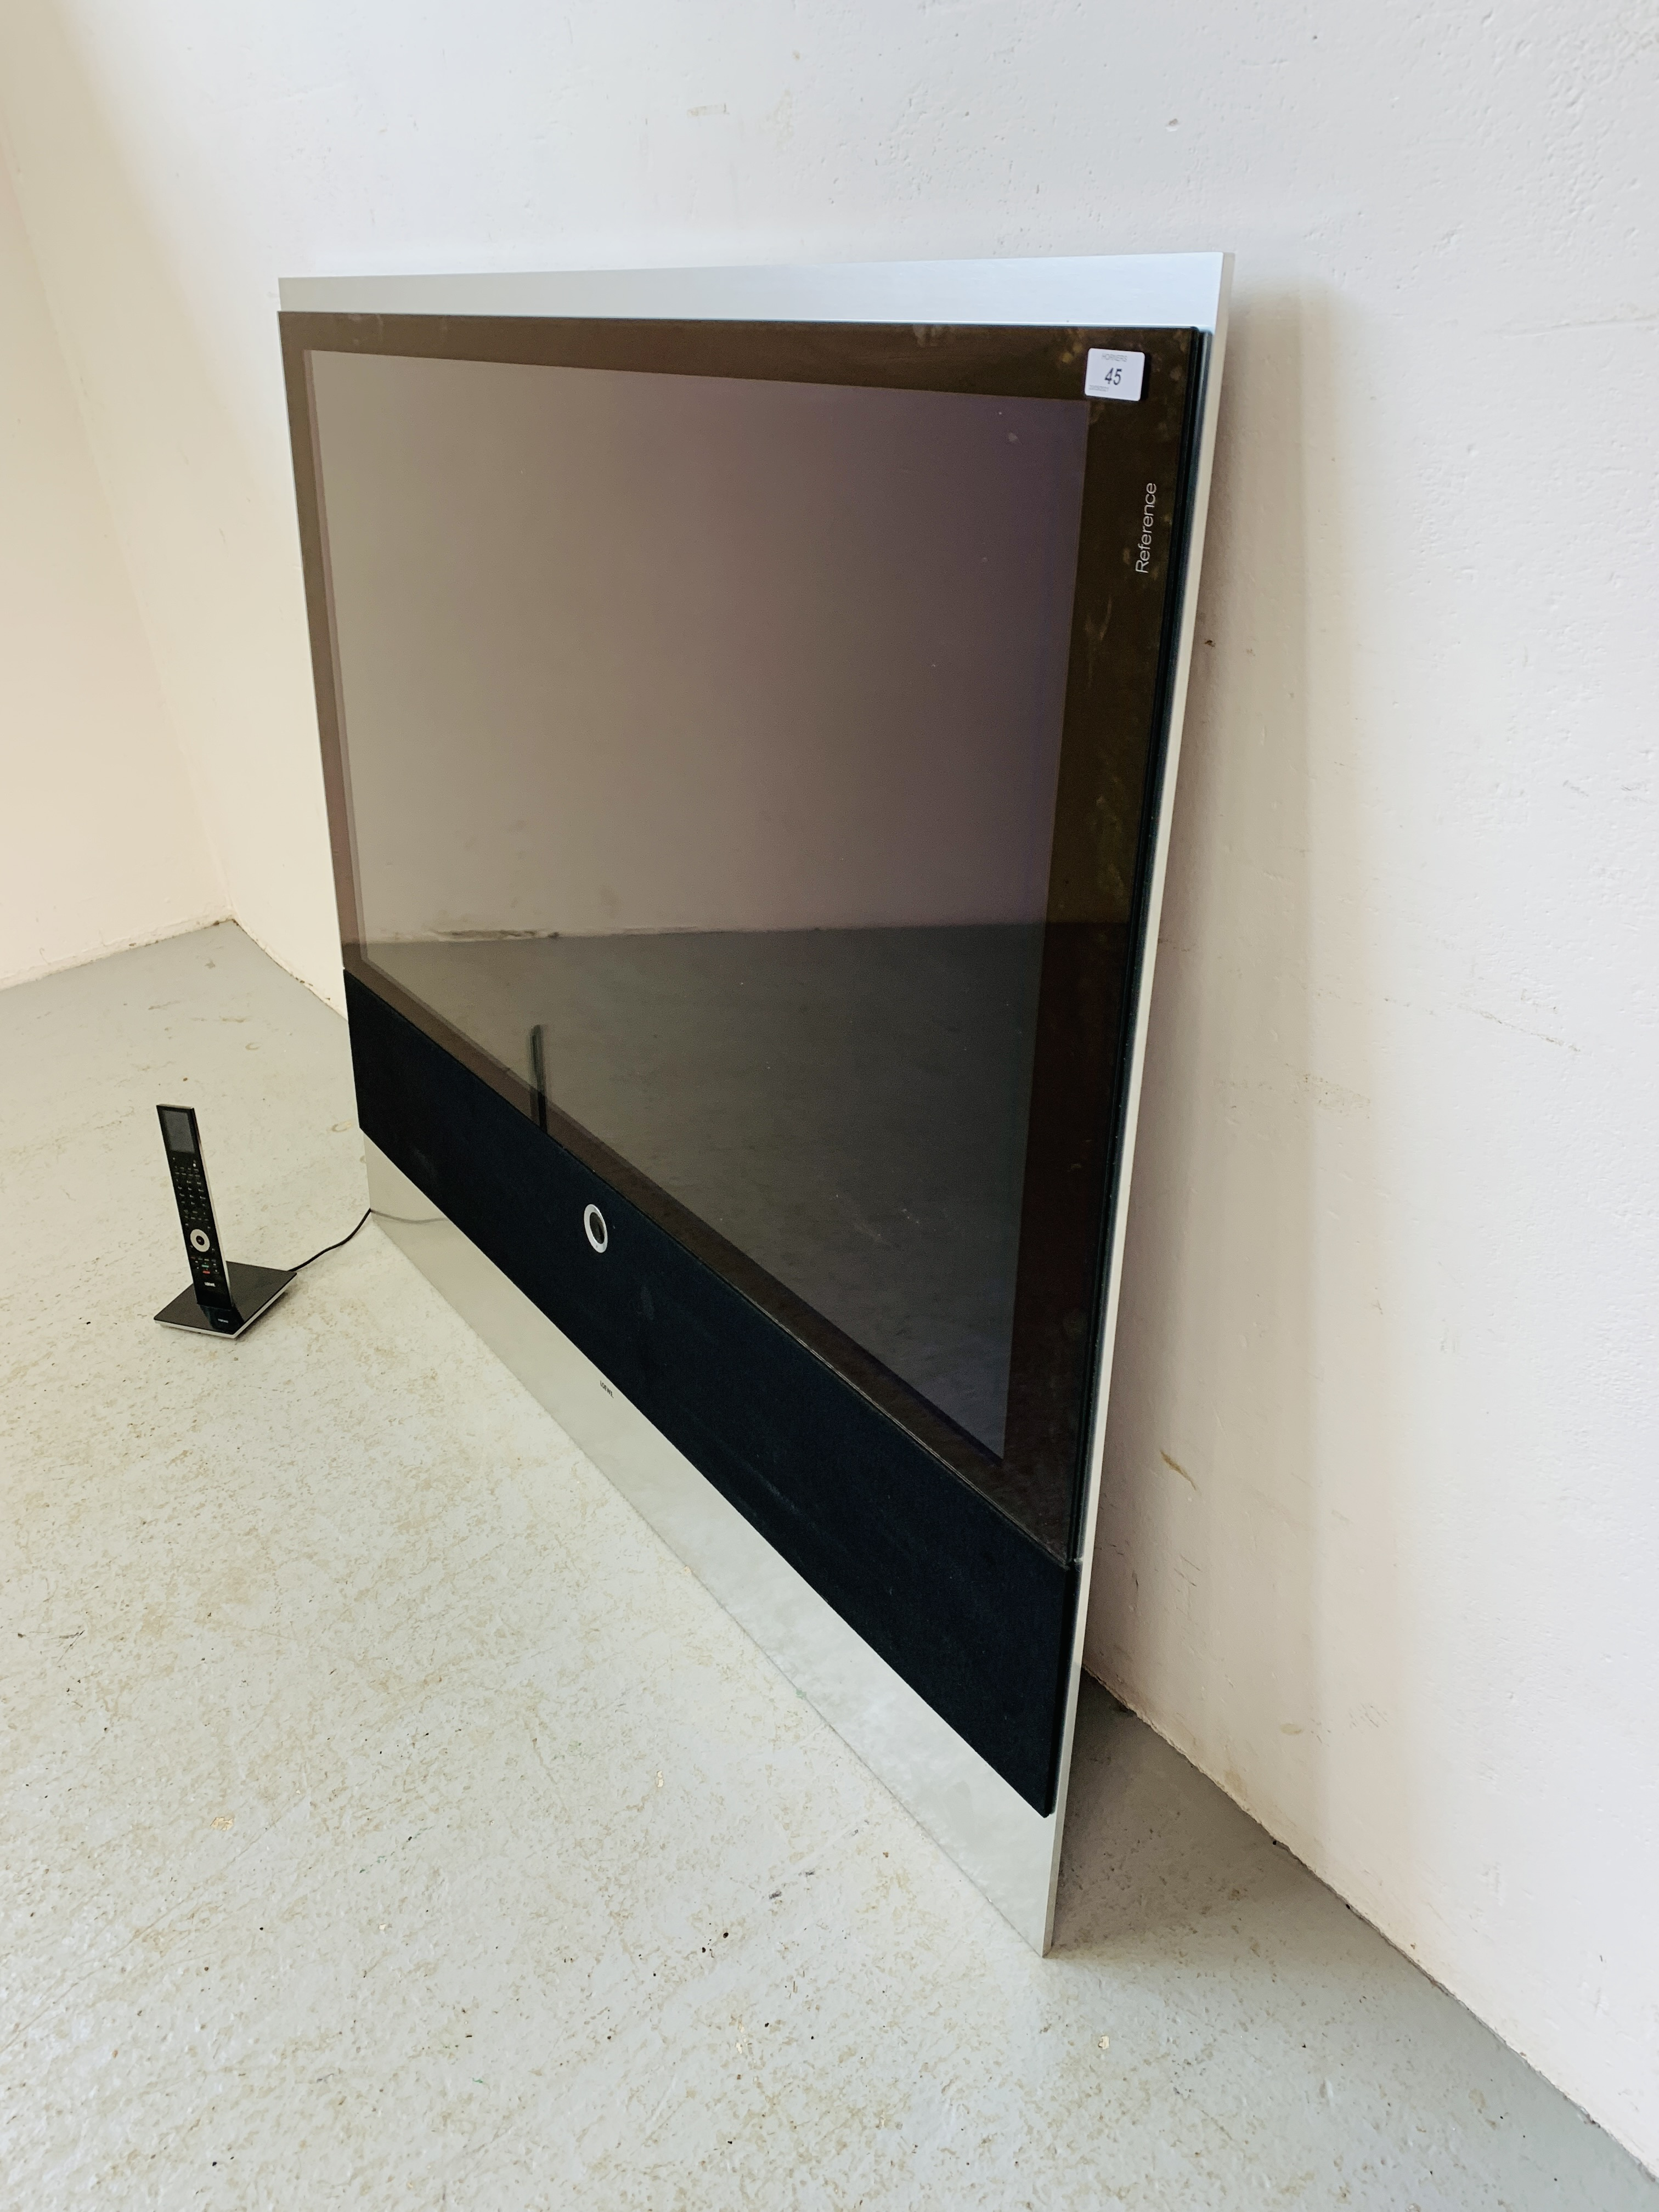 A LOEWE REFERENCE 52 TELEVISION WITH ORIGINAL REMOTE - SOLD AS SEEN - Image 3 of 14